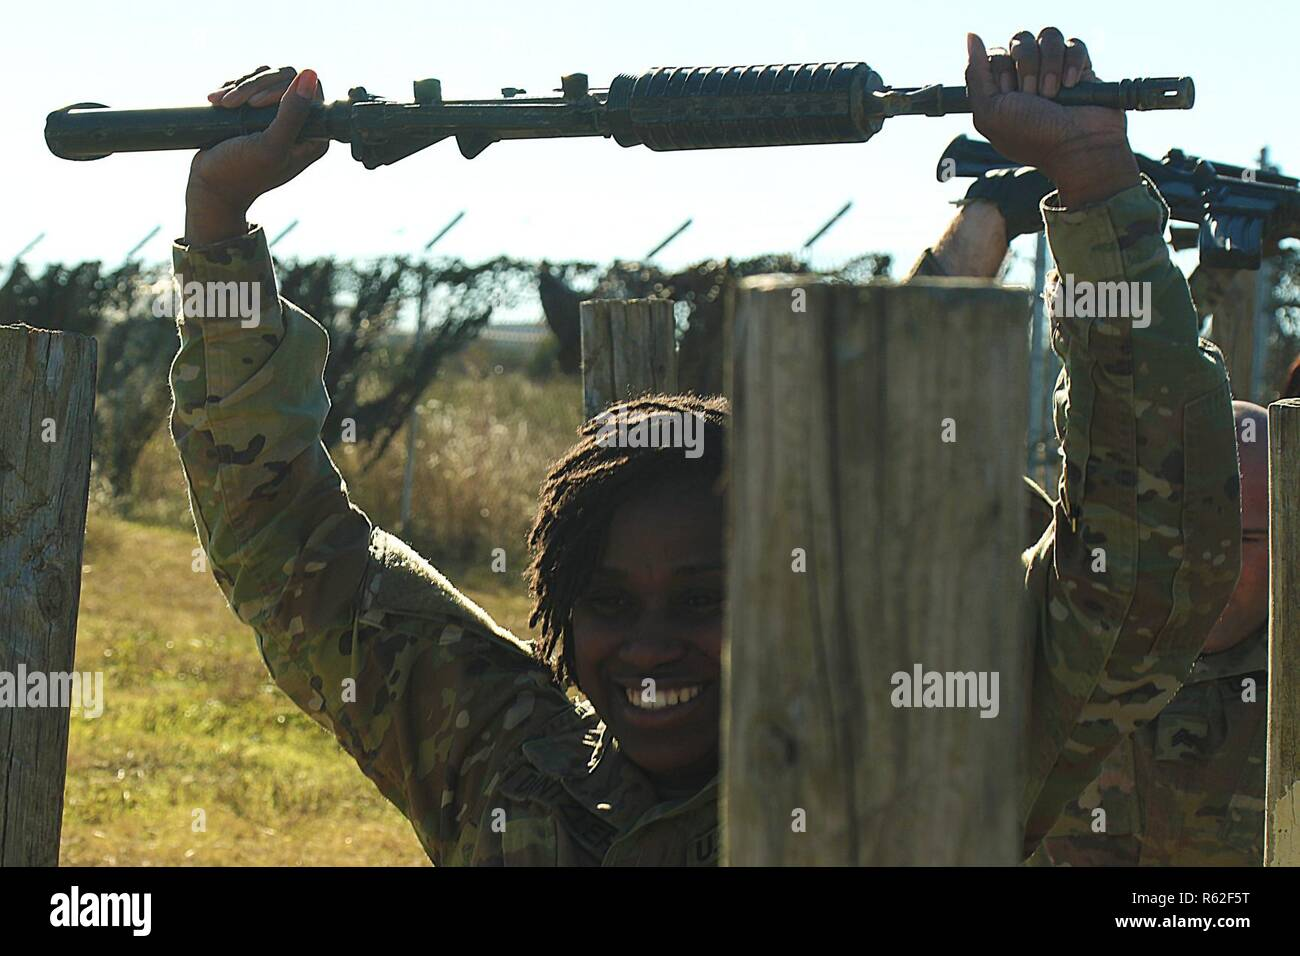 Spc. Jasmine Dantzler raises her rifle over her head during the stress lane at the Phantom First Responder course November 16, 2018, at Fort Hood, Texas. The course, a combination of Tactical Combat Casualty Care - All Combatants (TCCC-AC) and Combat Lifesaver (CLS), teaches Soldiers how to respond under high levels of stress and provide care to casualties. - Stock Image